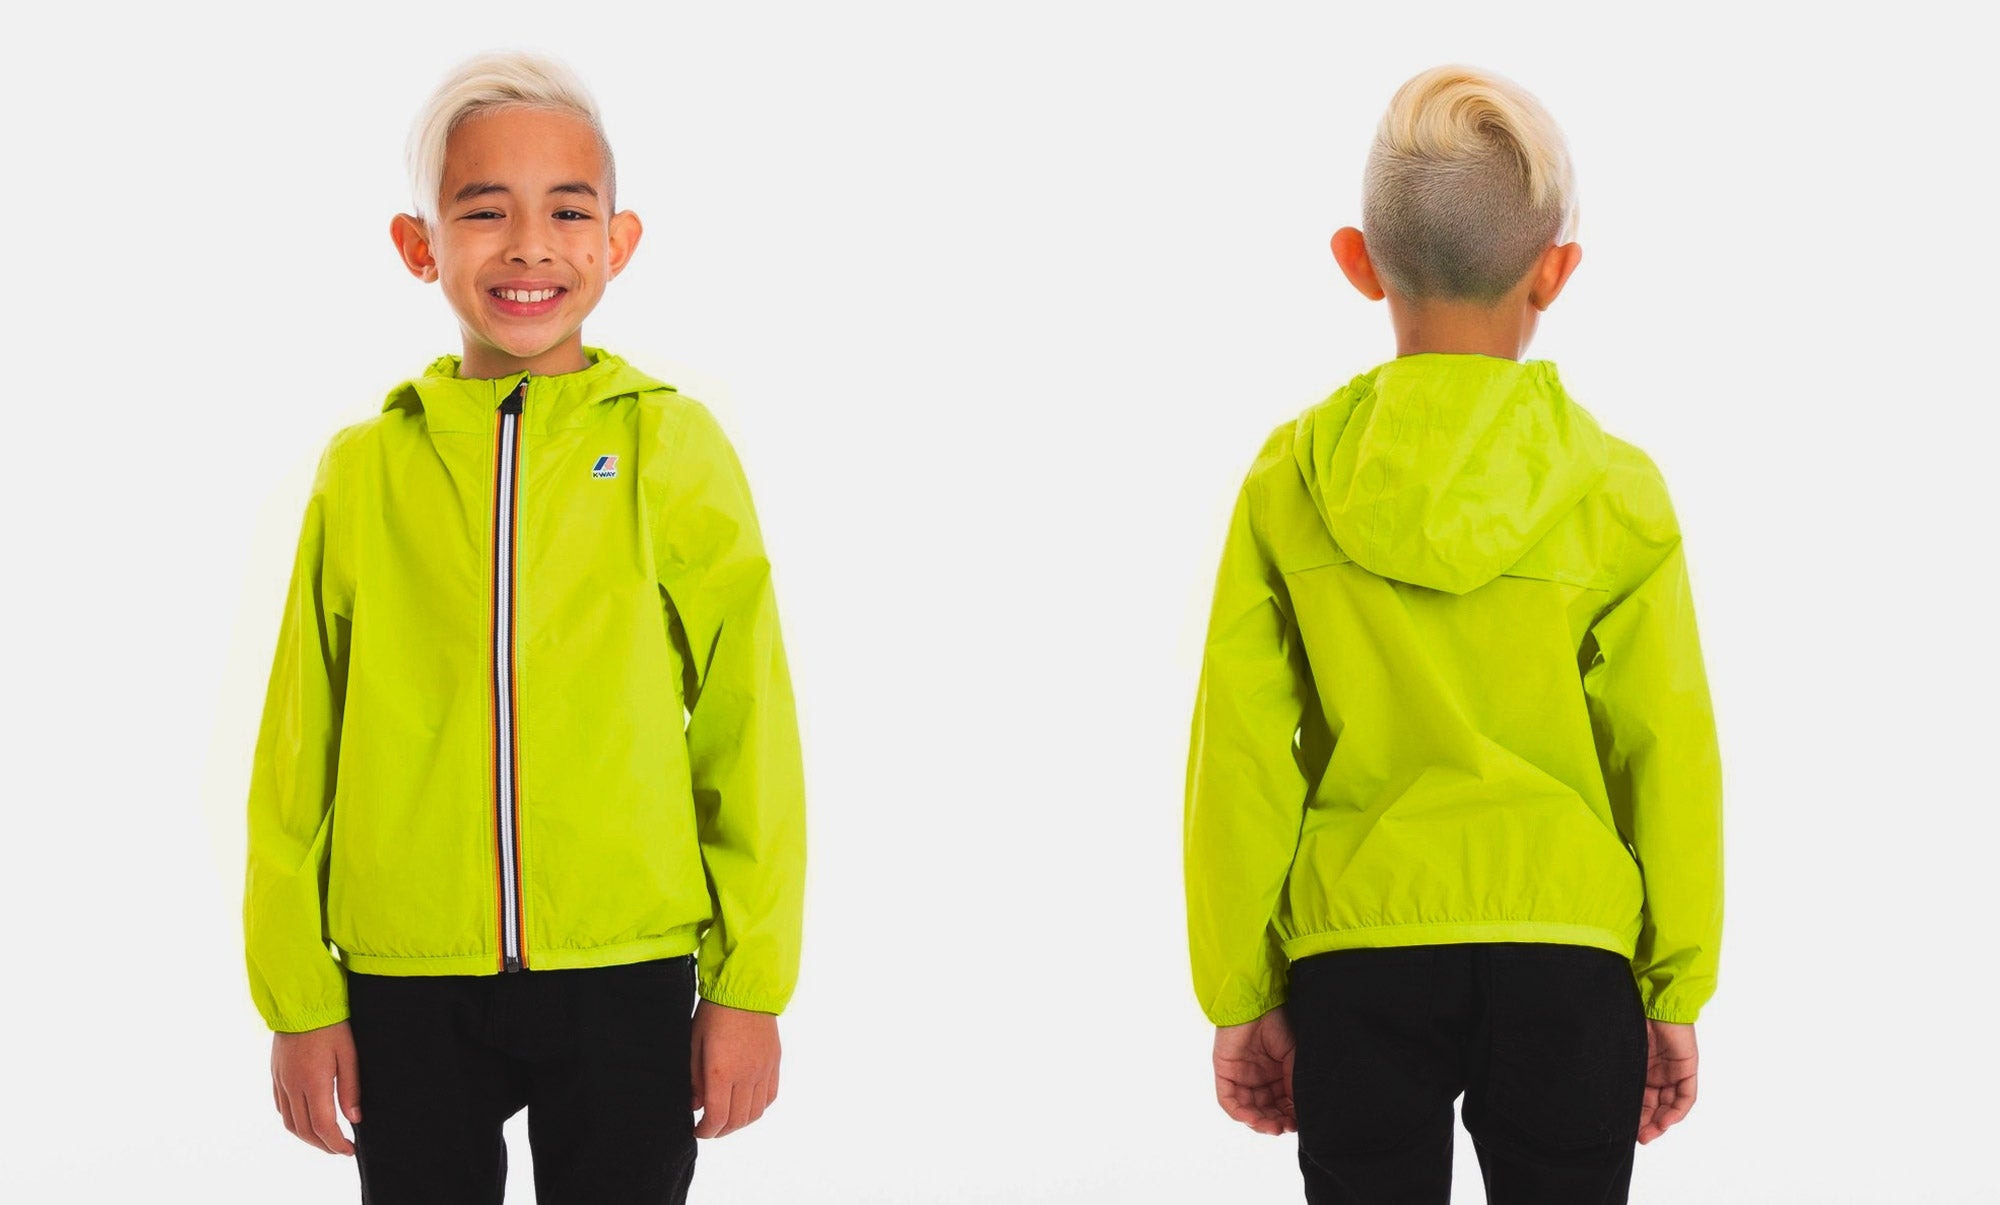 Claude - Kids Packable Full Zip Rain Jacket in Green Lime Lifestyle Photo